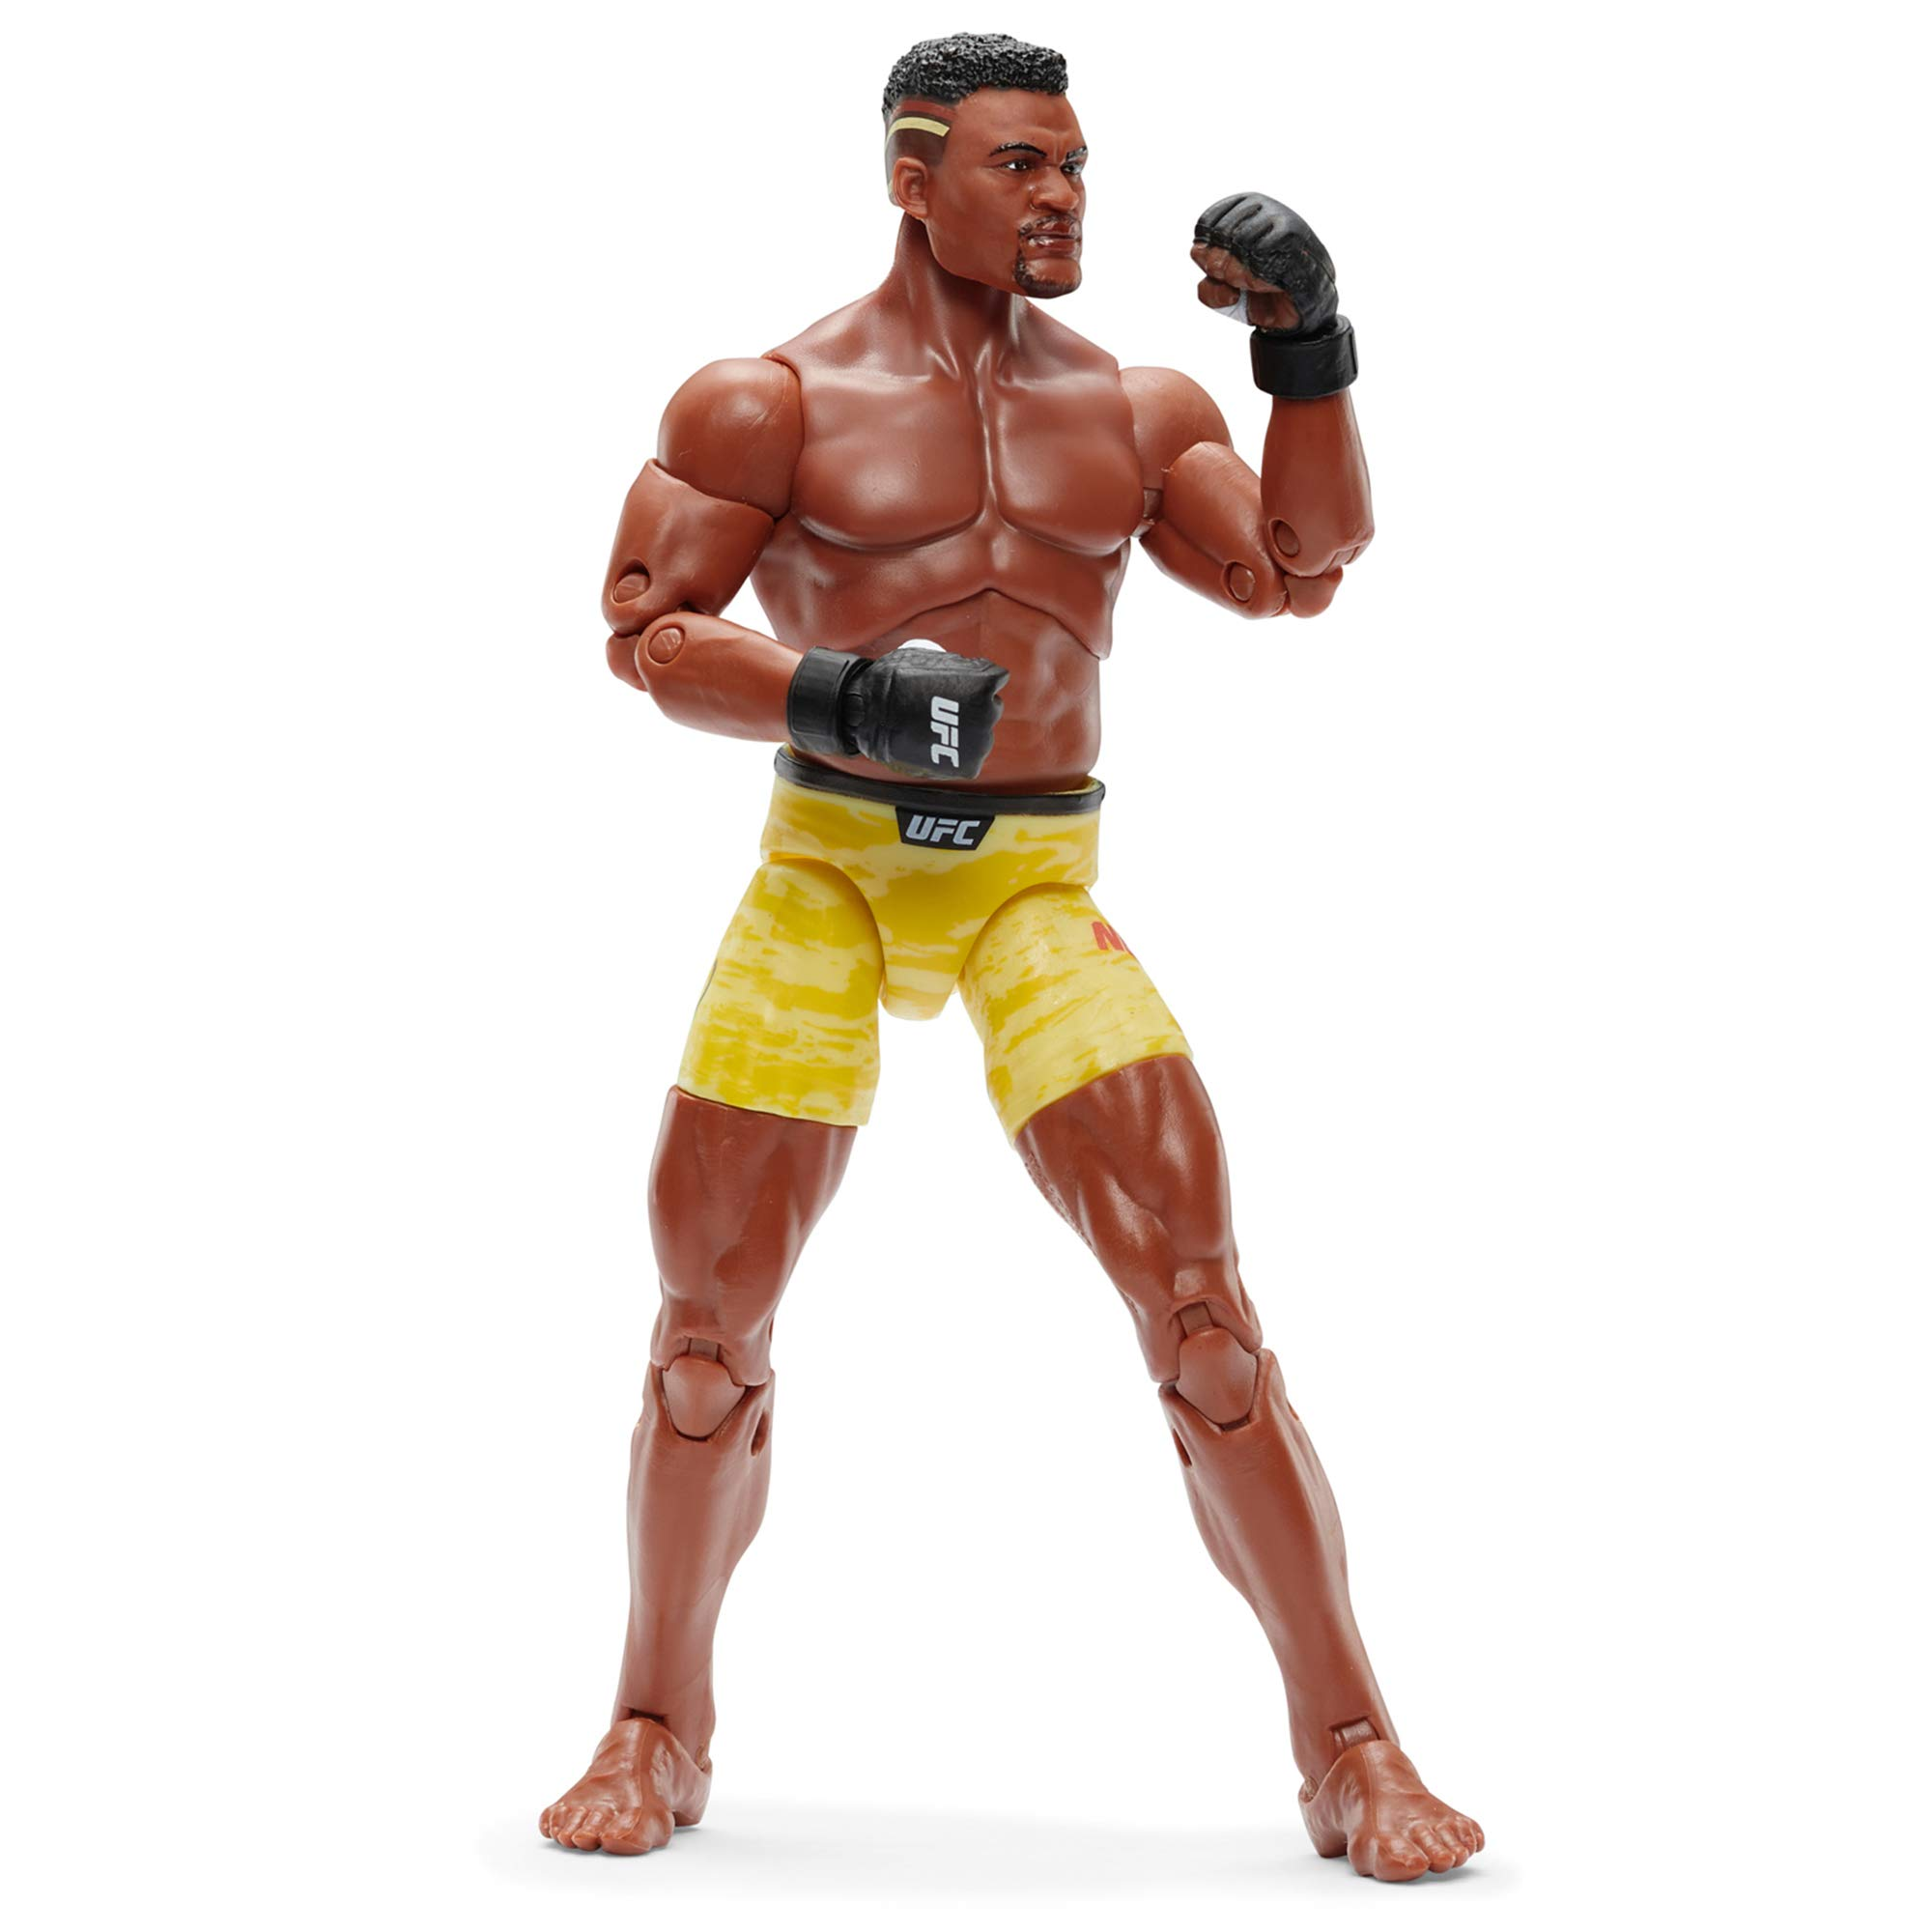 UFC Ultimate Series Francis Ngannou Action Figure - 6.5 Inch Collectible